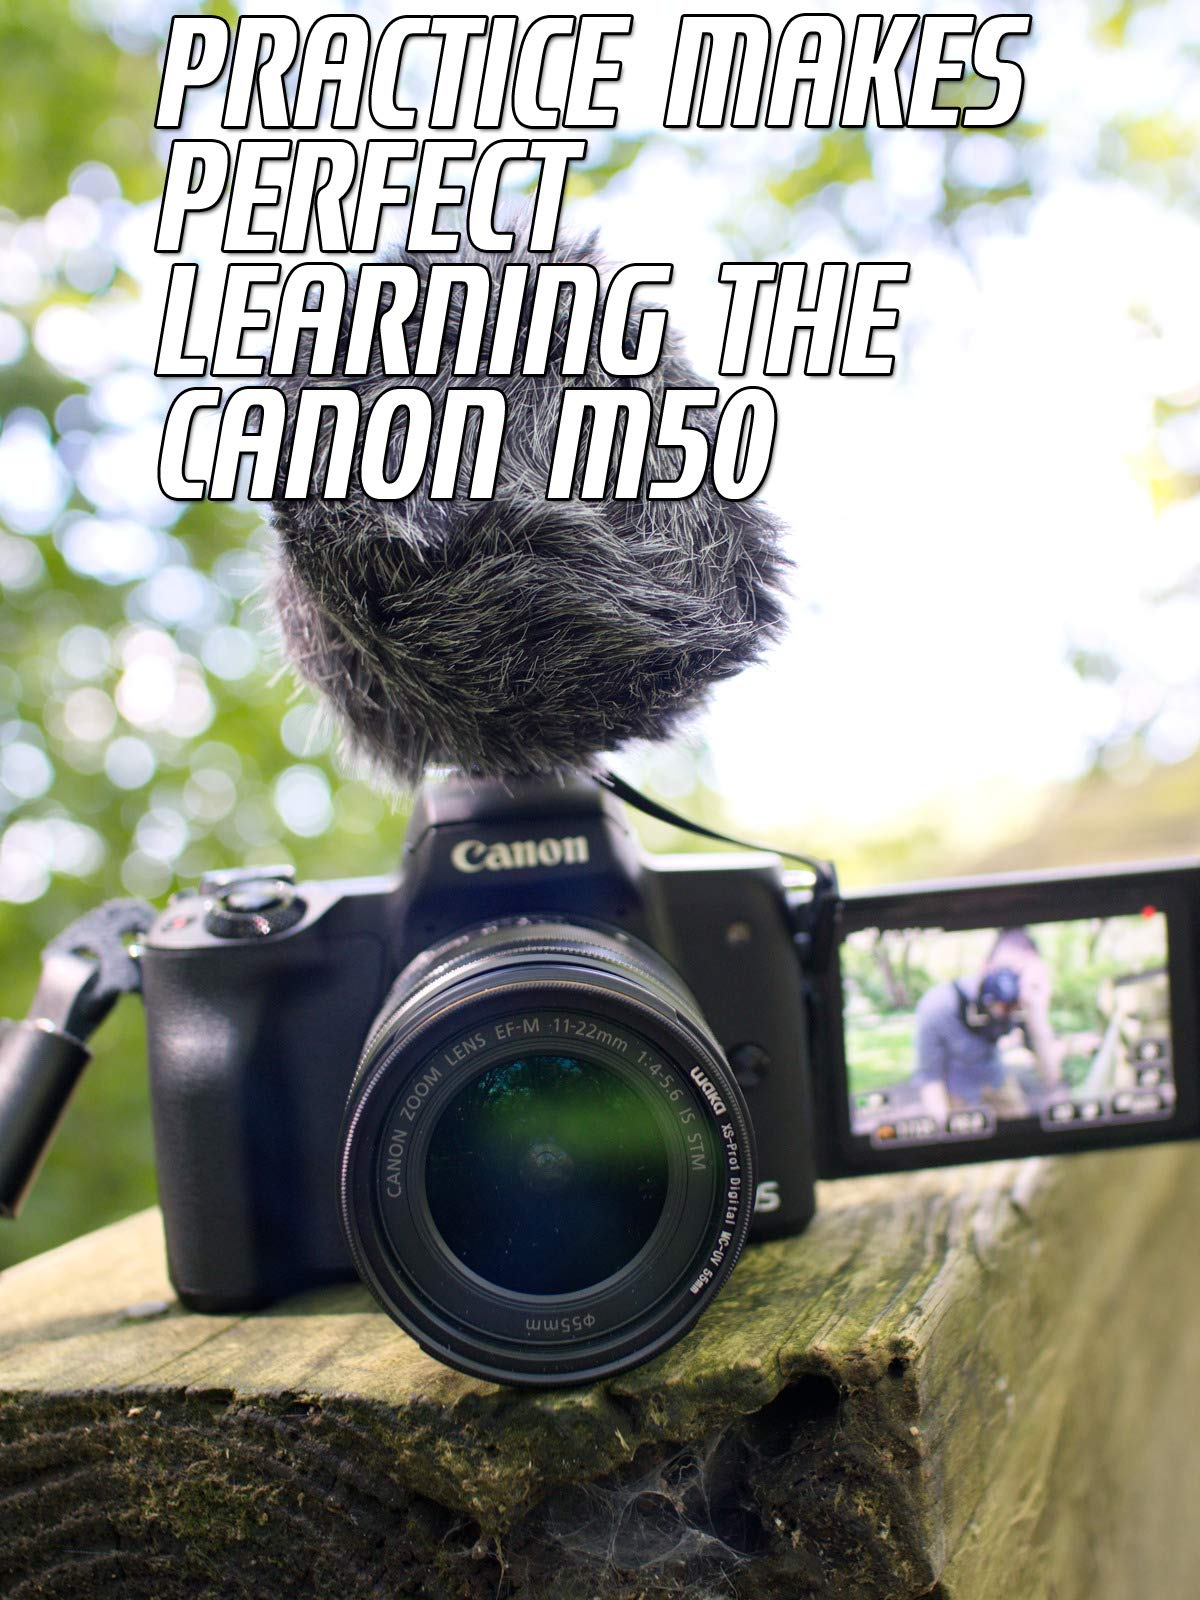 Practice Makes Perfect Learning The Canon M50